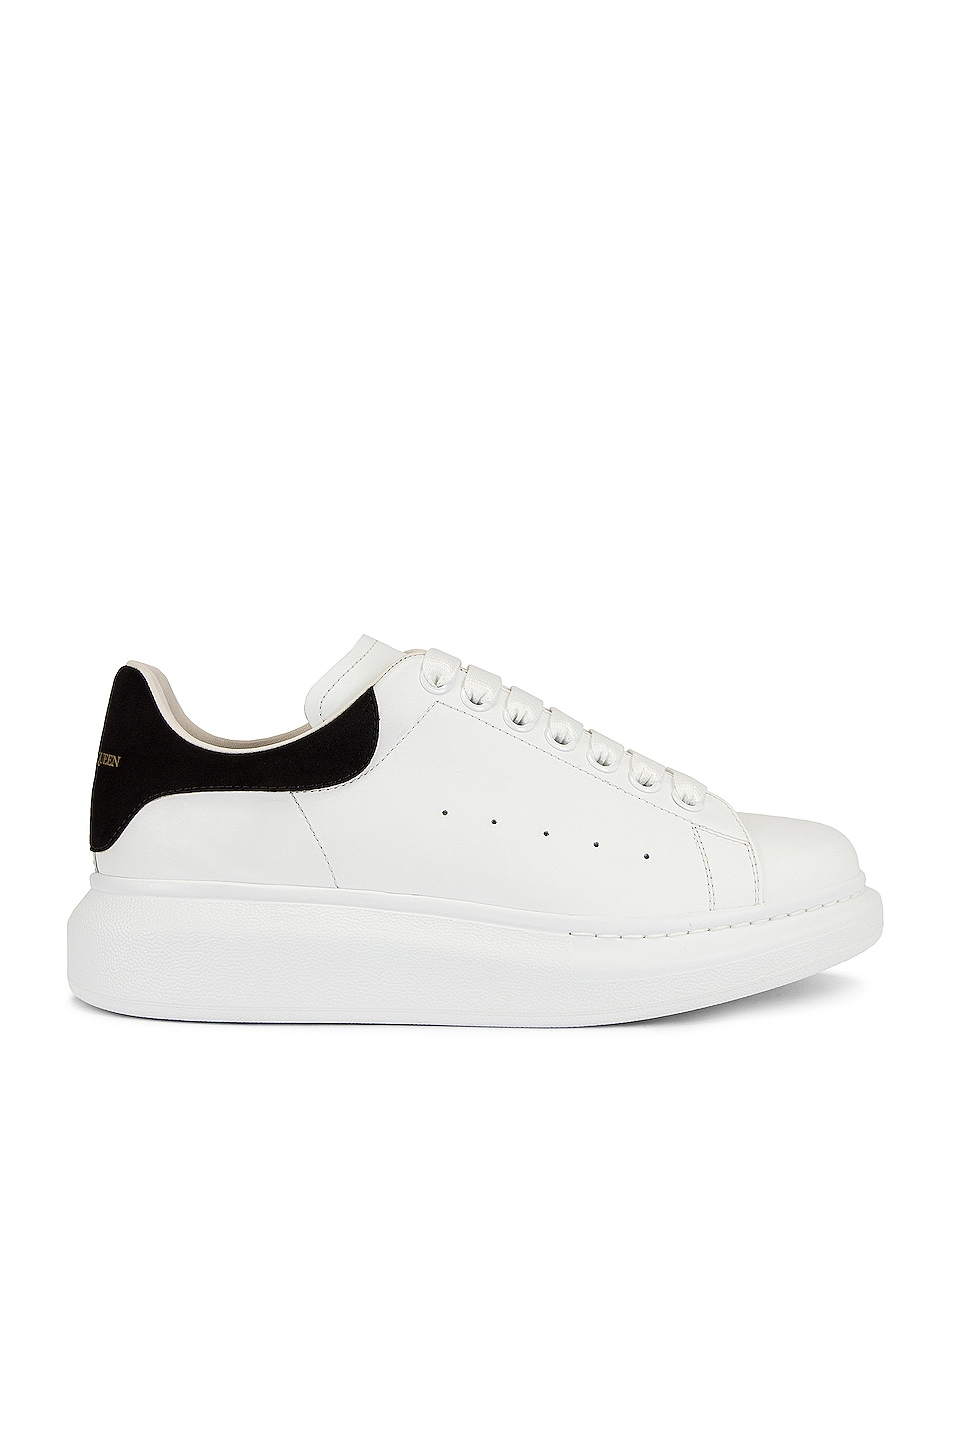 Image 1 of Alexander McQueen Leather Platform Sneakers in White & Black